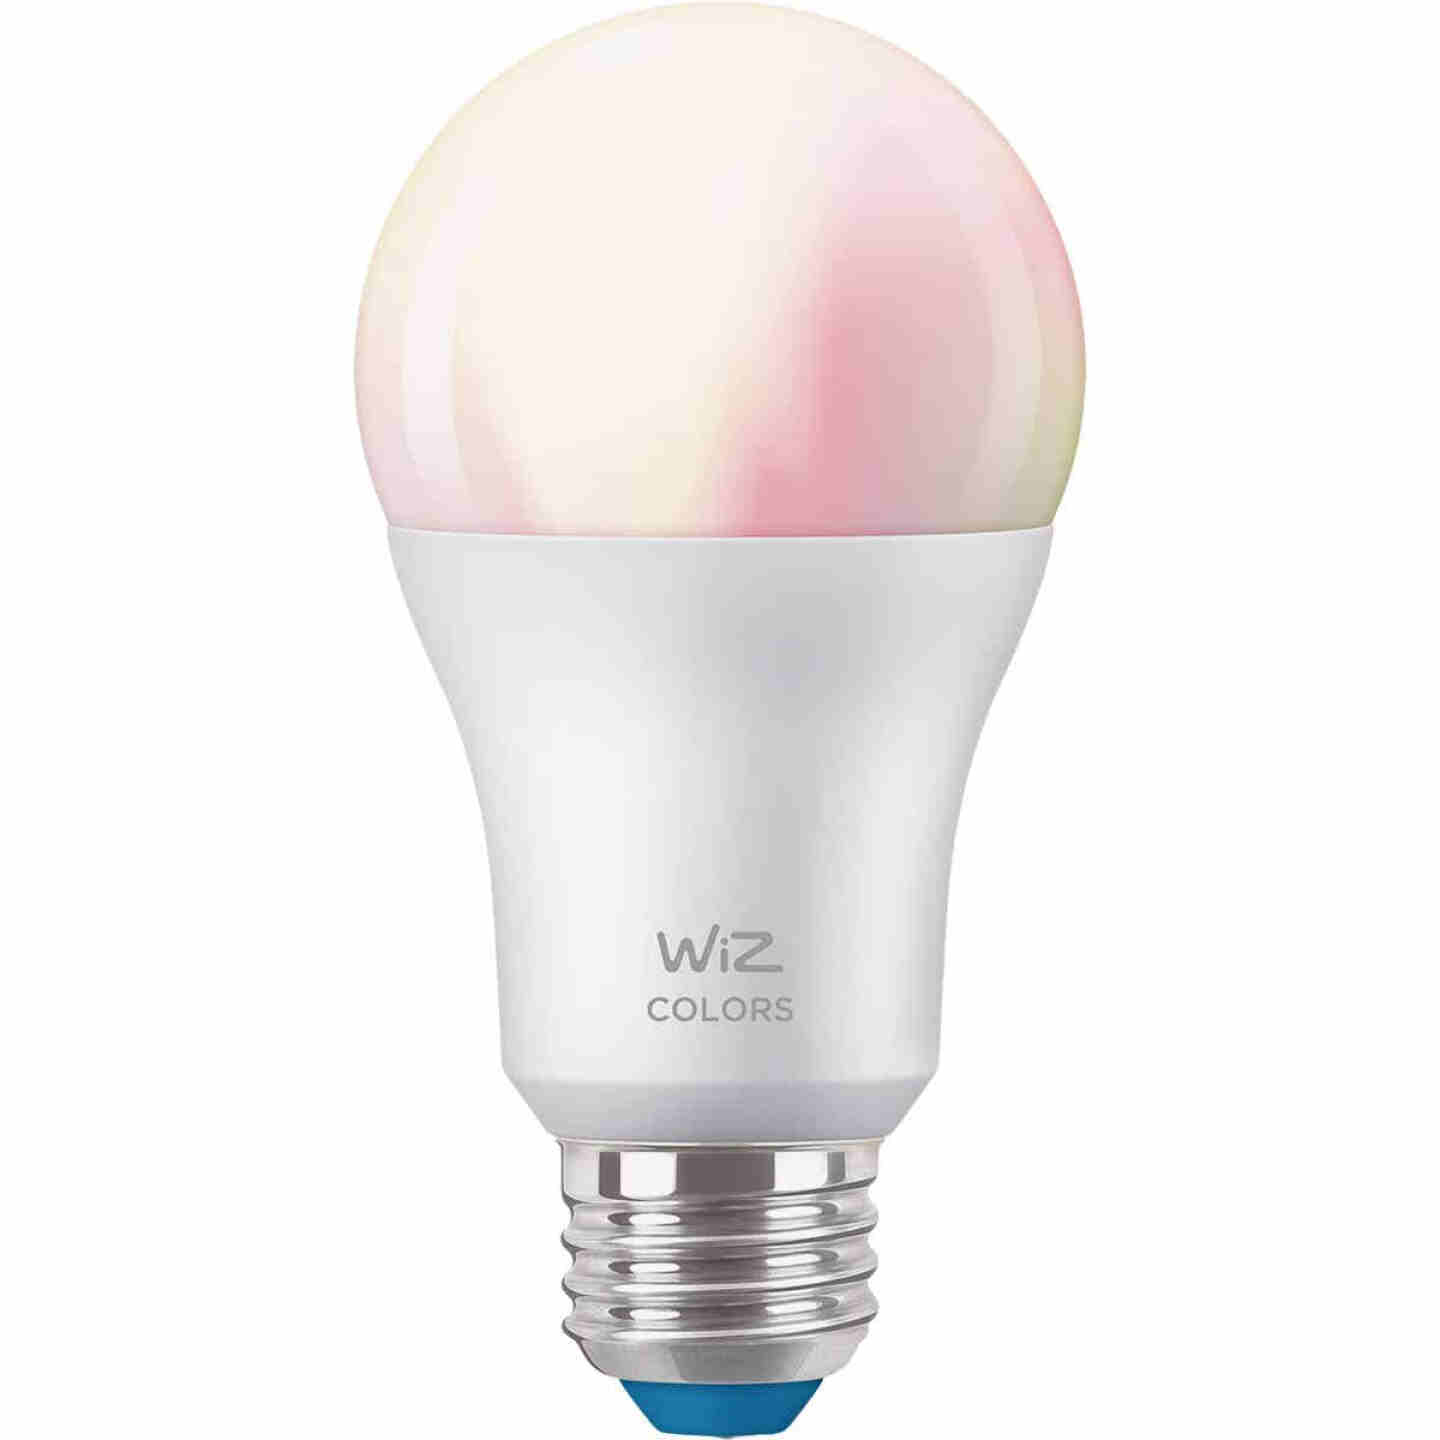 Wiz 60W Equivalent Color Changing A19 Medium Dimmable Smart LED Light Bulb Image 2